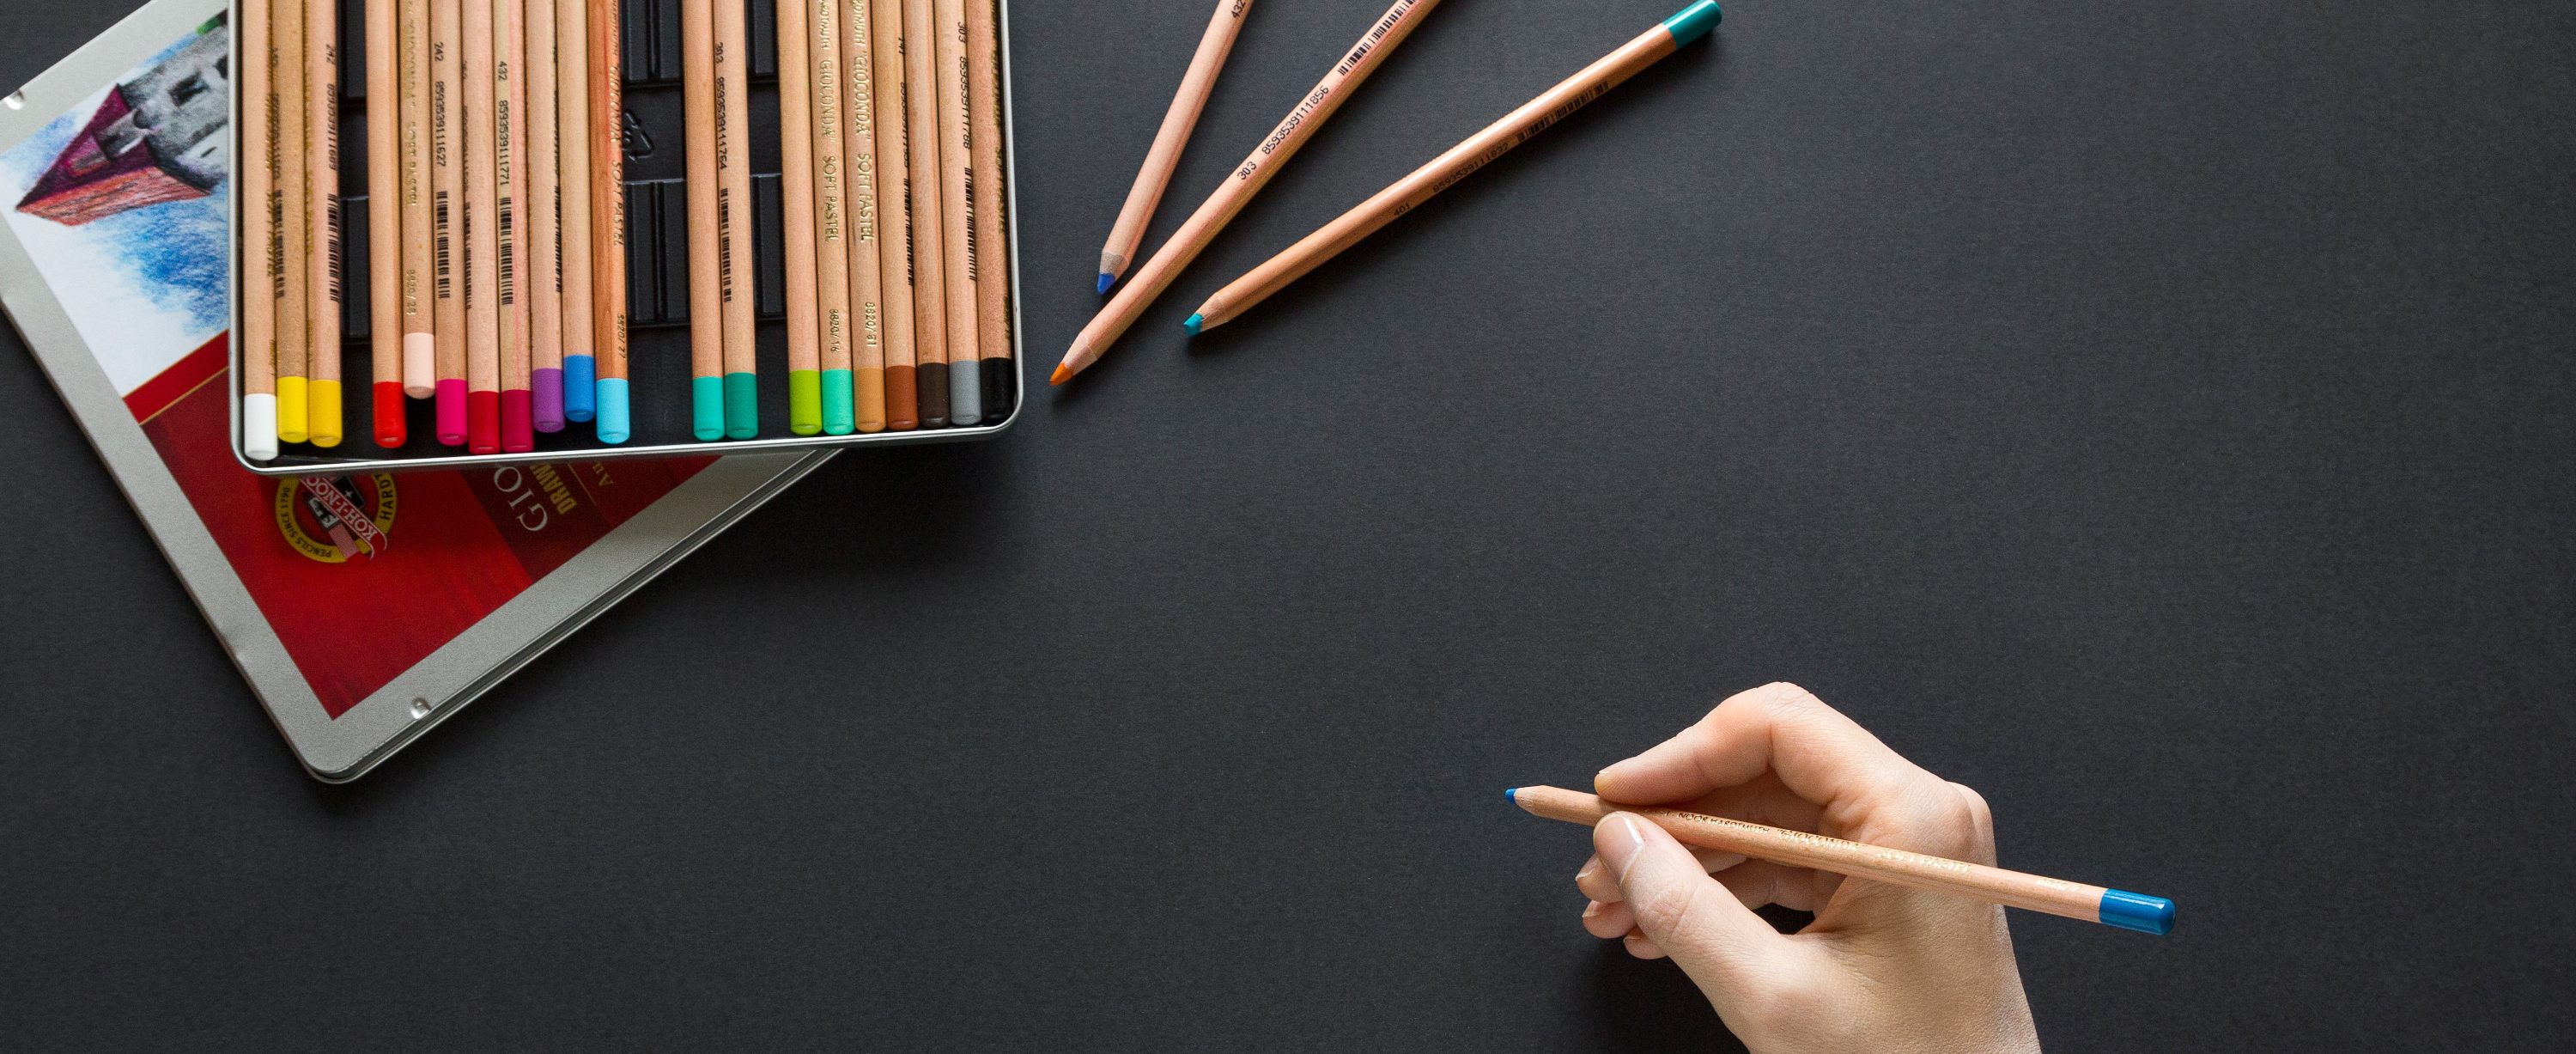 Person holding colored pencil. Photo by Neven Krcmarek on Unsplash.